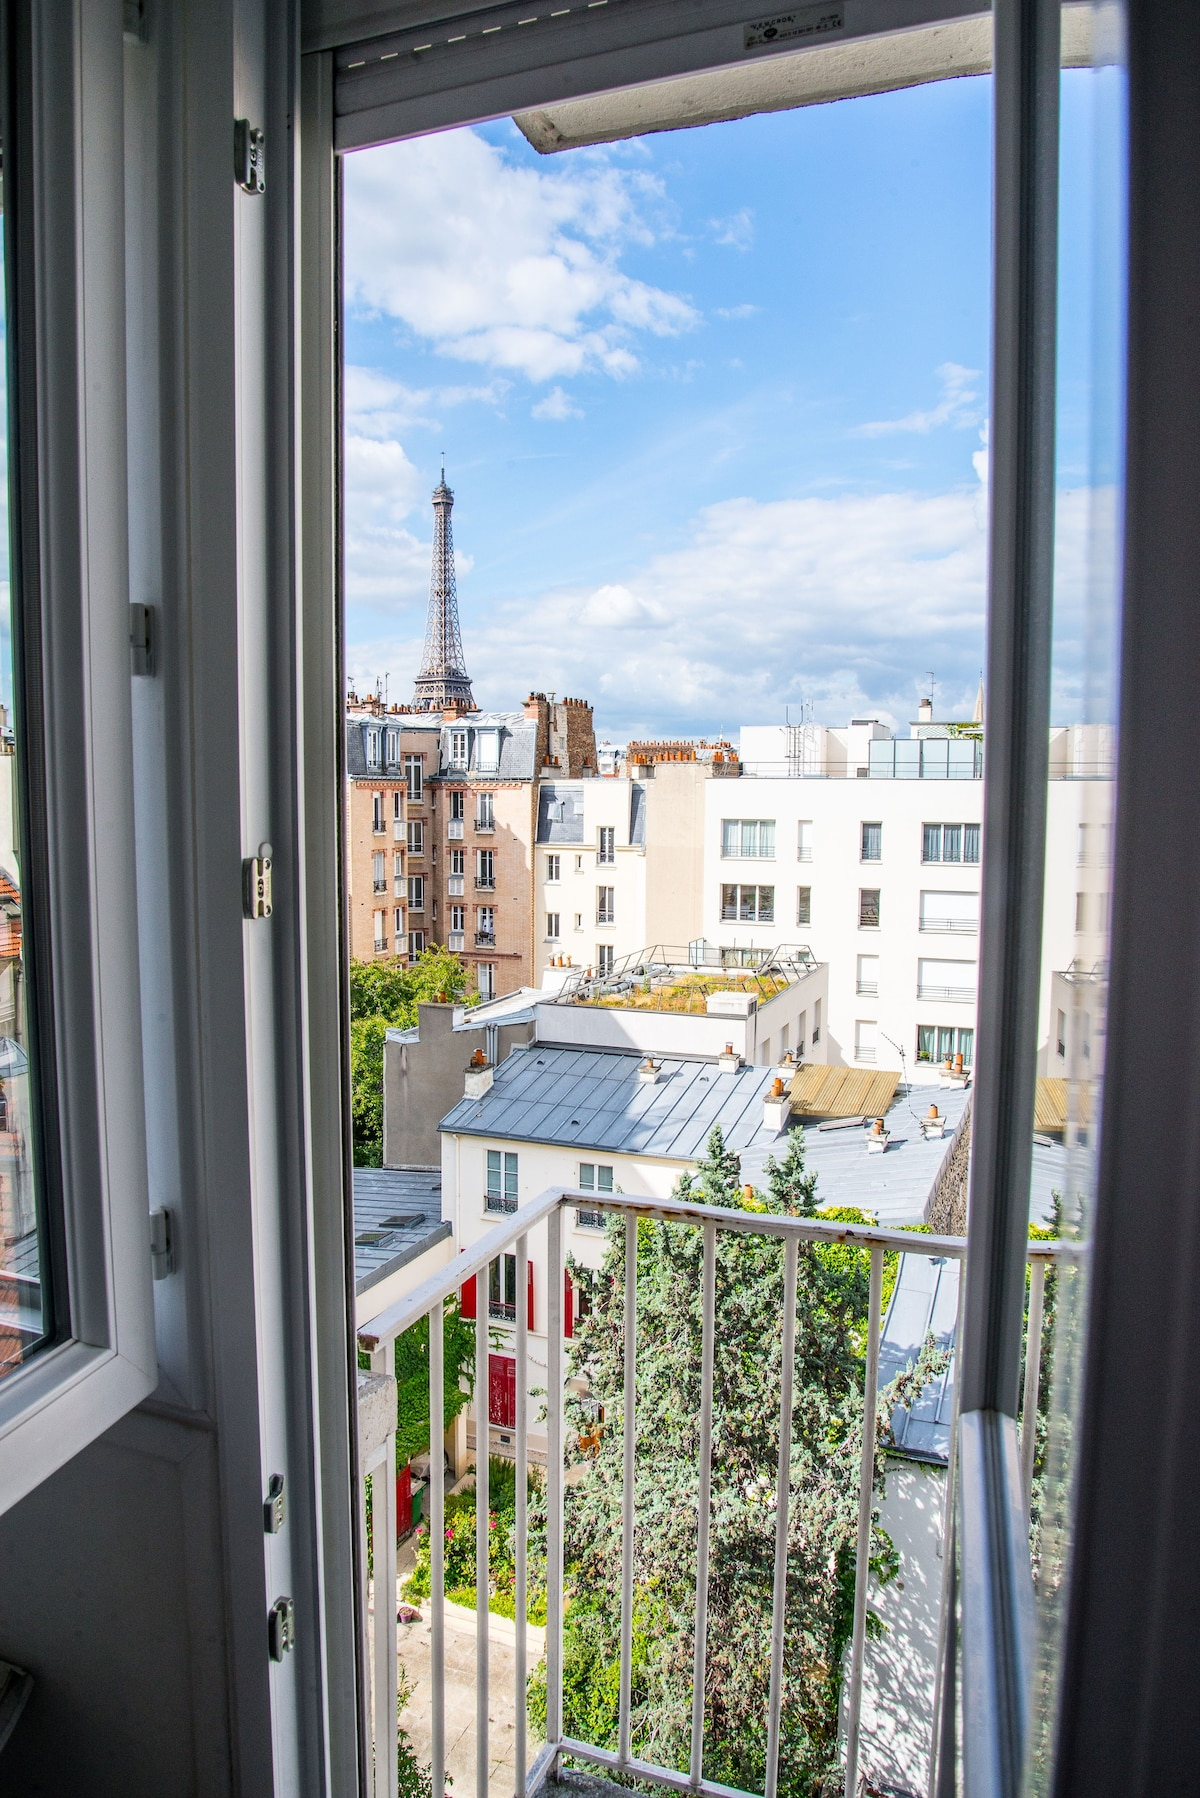 | Airbnb Paris France Near Eiffel Tower | Airbnb Paris Apartment With Eiffel Tower Views | Airbnb Paris With View Of Eiffel Tower | Best Airbnb In Paris